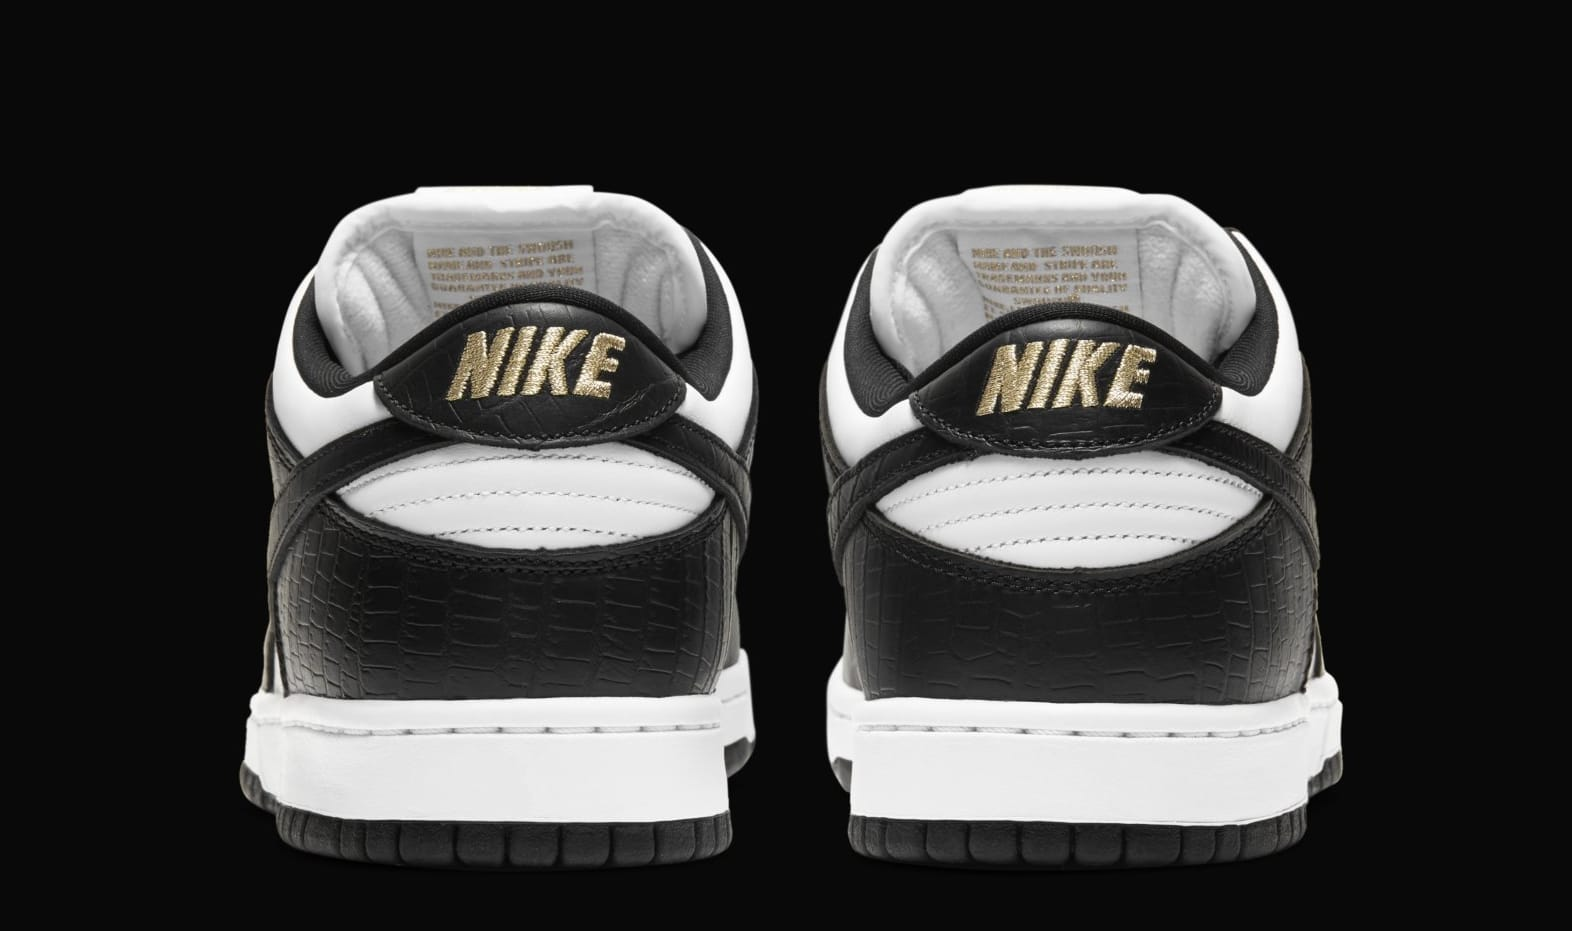 Supreme x Nike SB Dunk Low 'Black' DH3228-102 (Heel)